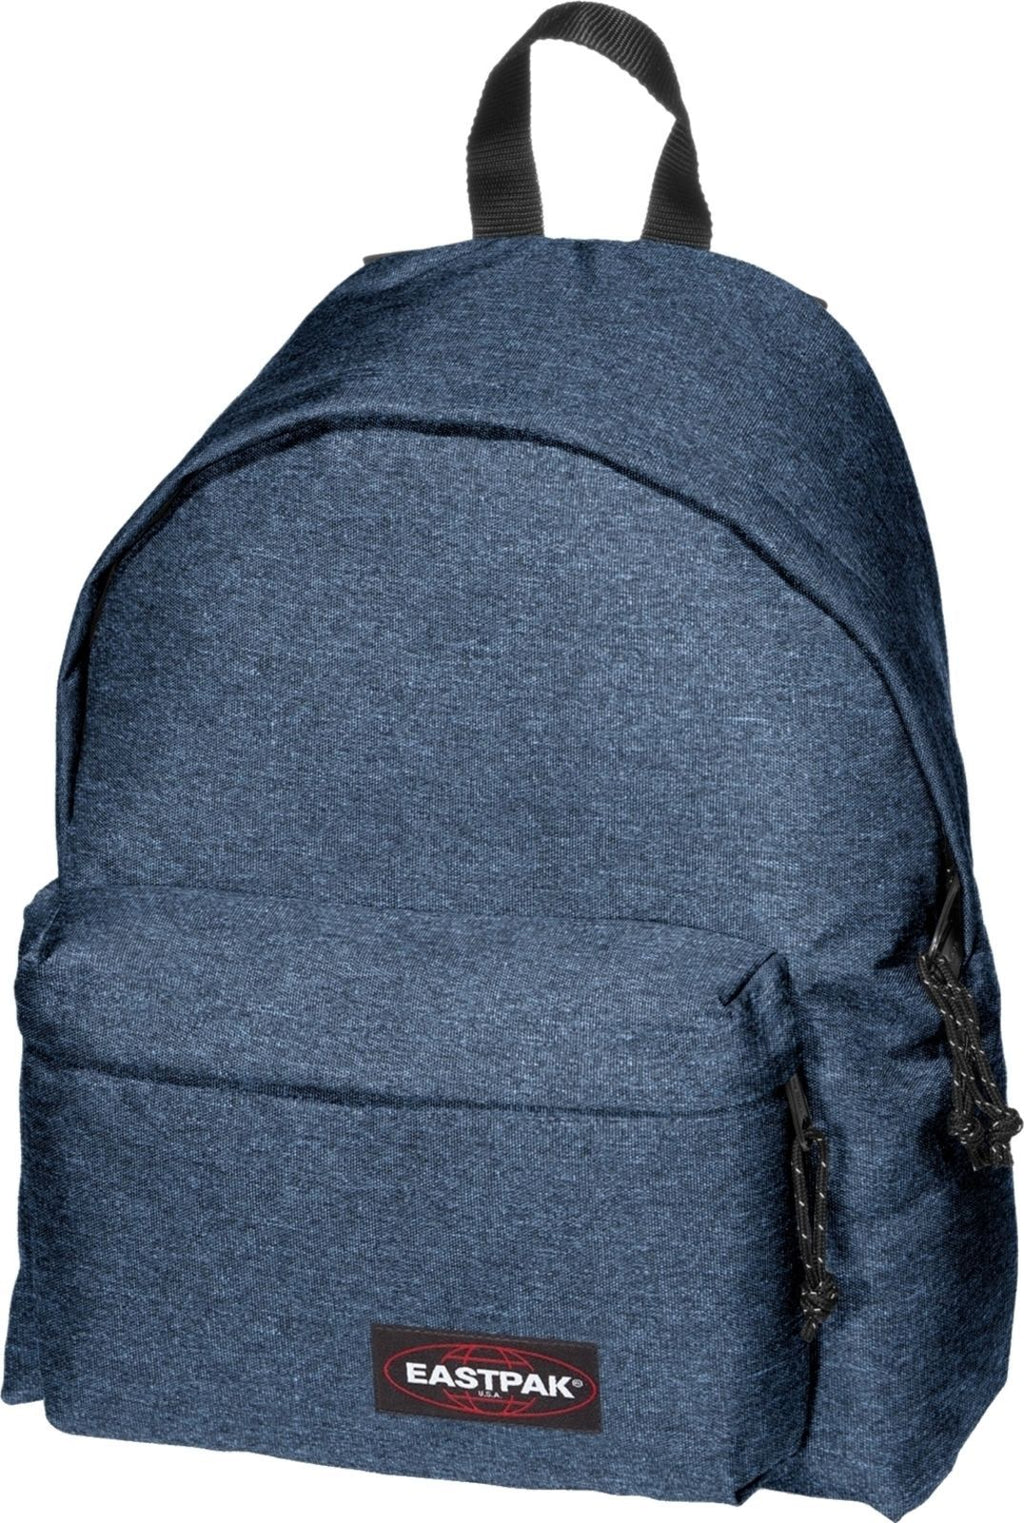 Eastpak Padded Pak'R Backpack Rucksack Bag Blue